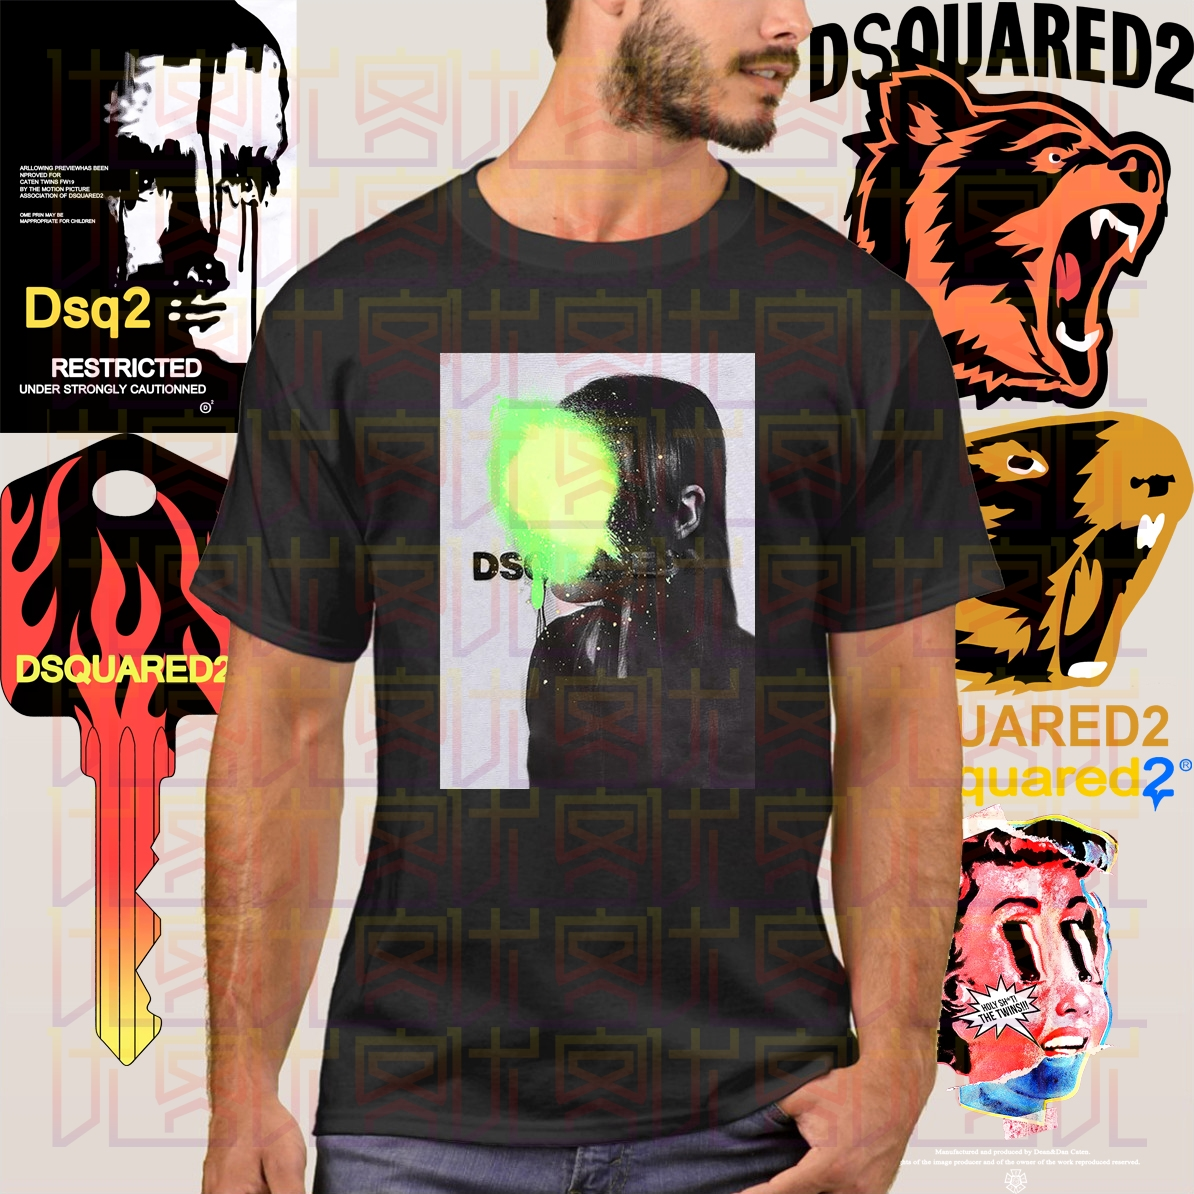 New Dsq2 T-Shirt Short Sleeve Slim Fit Printed Logo Printed Tee Unisex Size S-3X For Men Tops  O Neck Cotton Tees Tops-